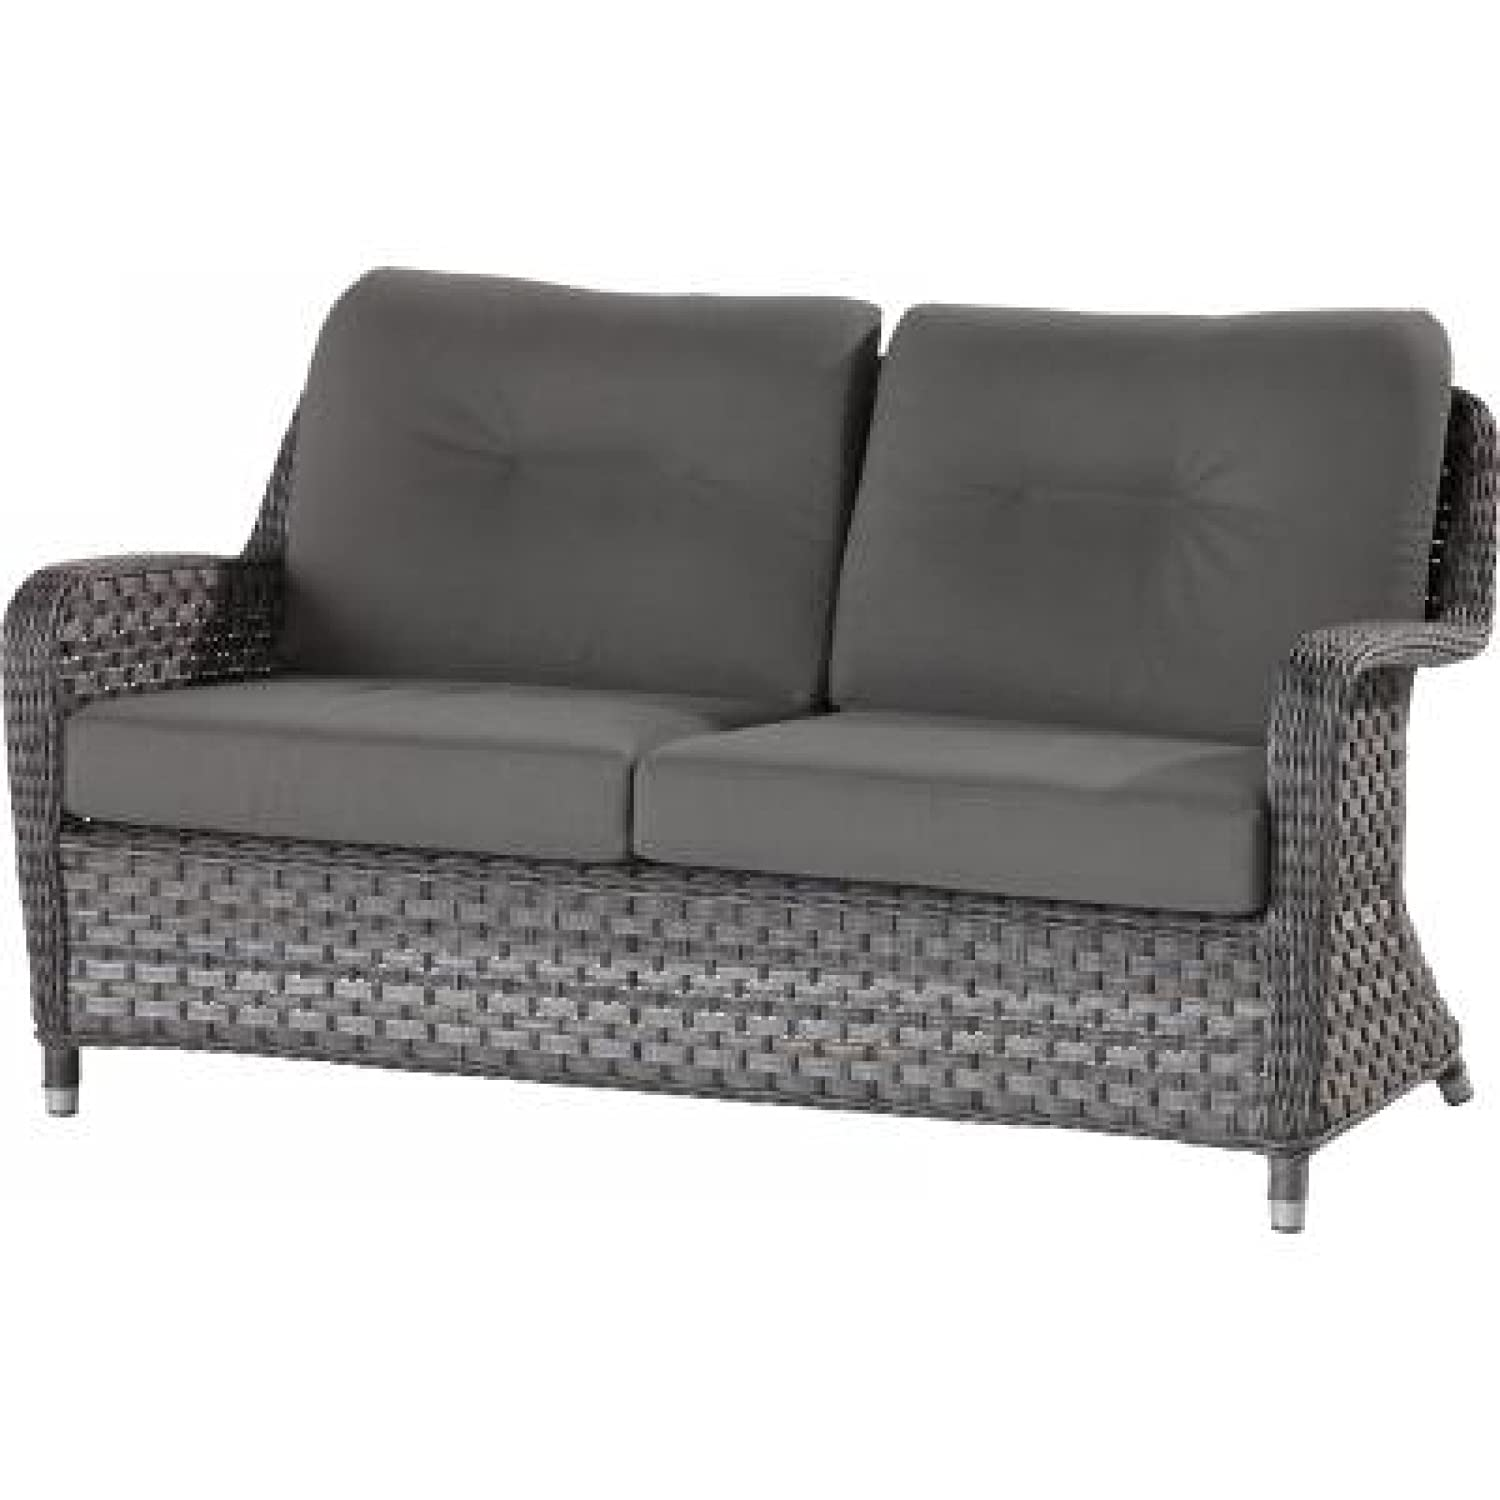 4Seasons Outdoor Eldorado 2.5-Sitzer Sofa Bank Polyrattan Duet Charcoal